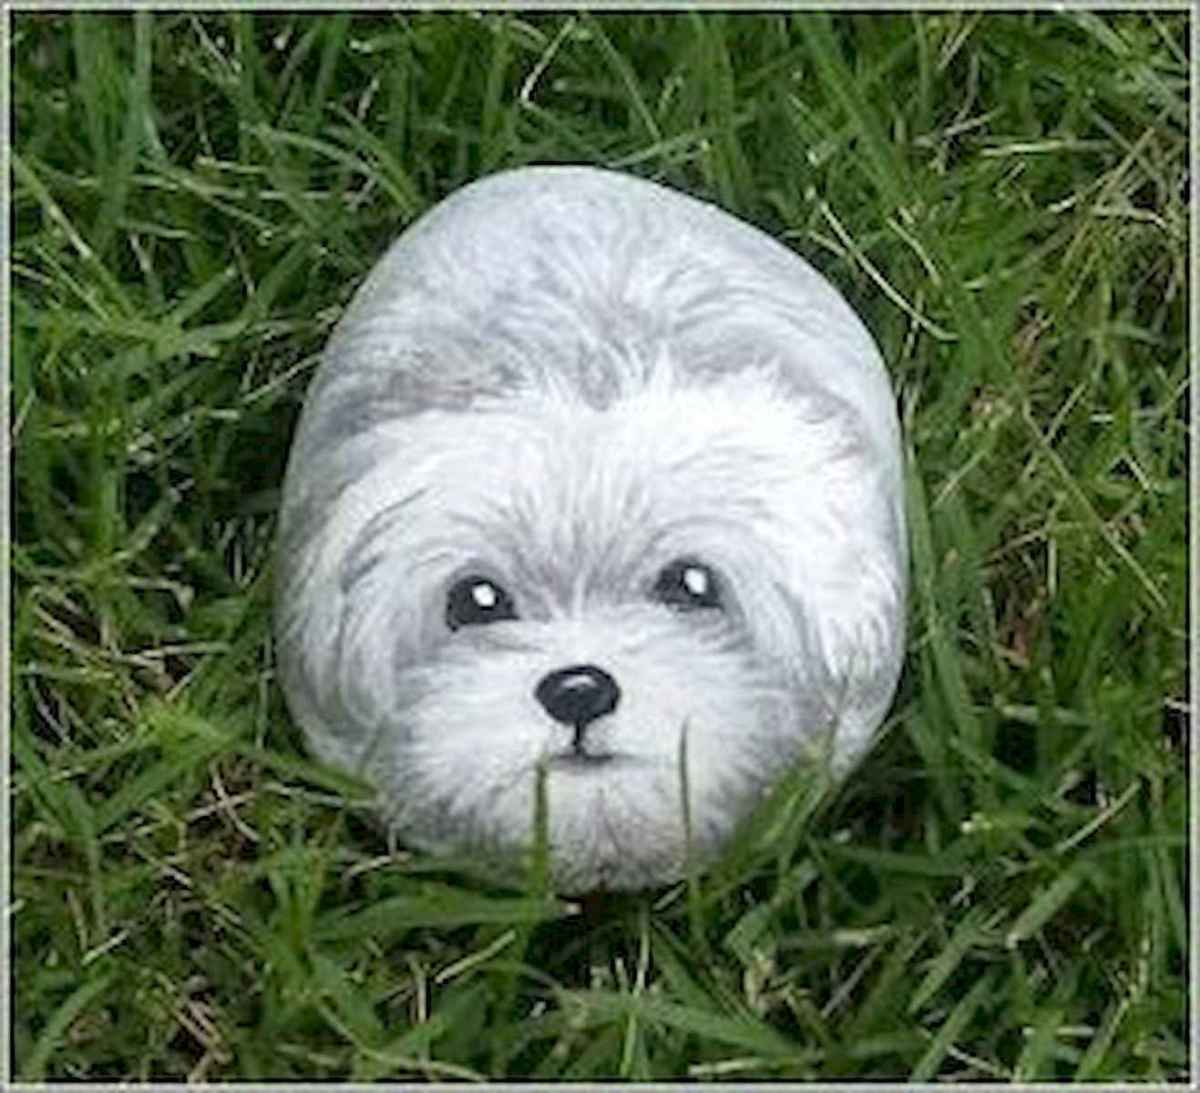 40 Awesome DIY Projects Painted Rocks Animals Dogs for Summer Ideas (32)